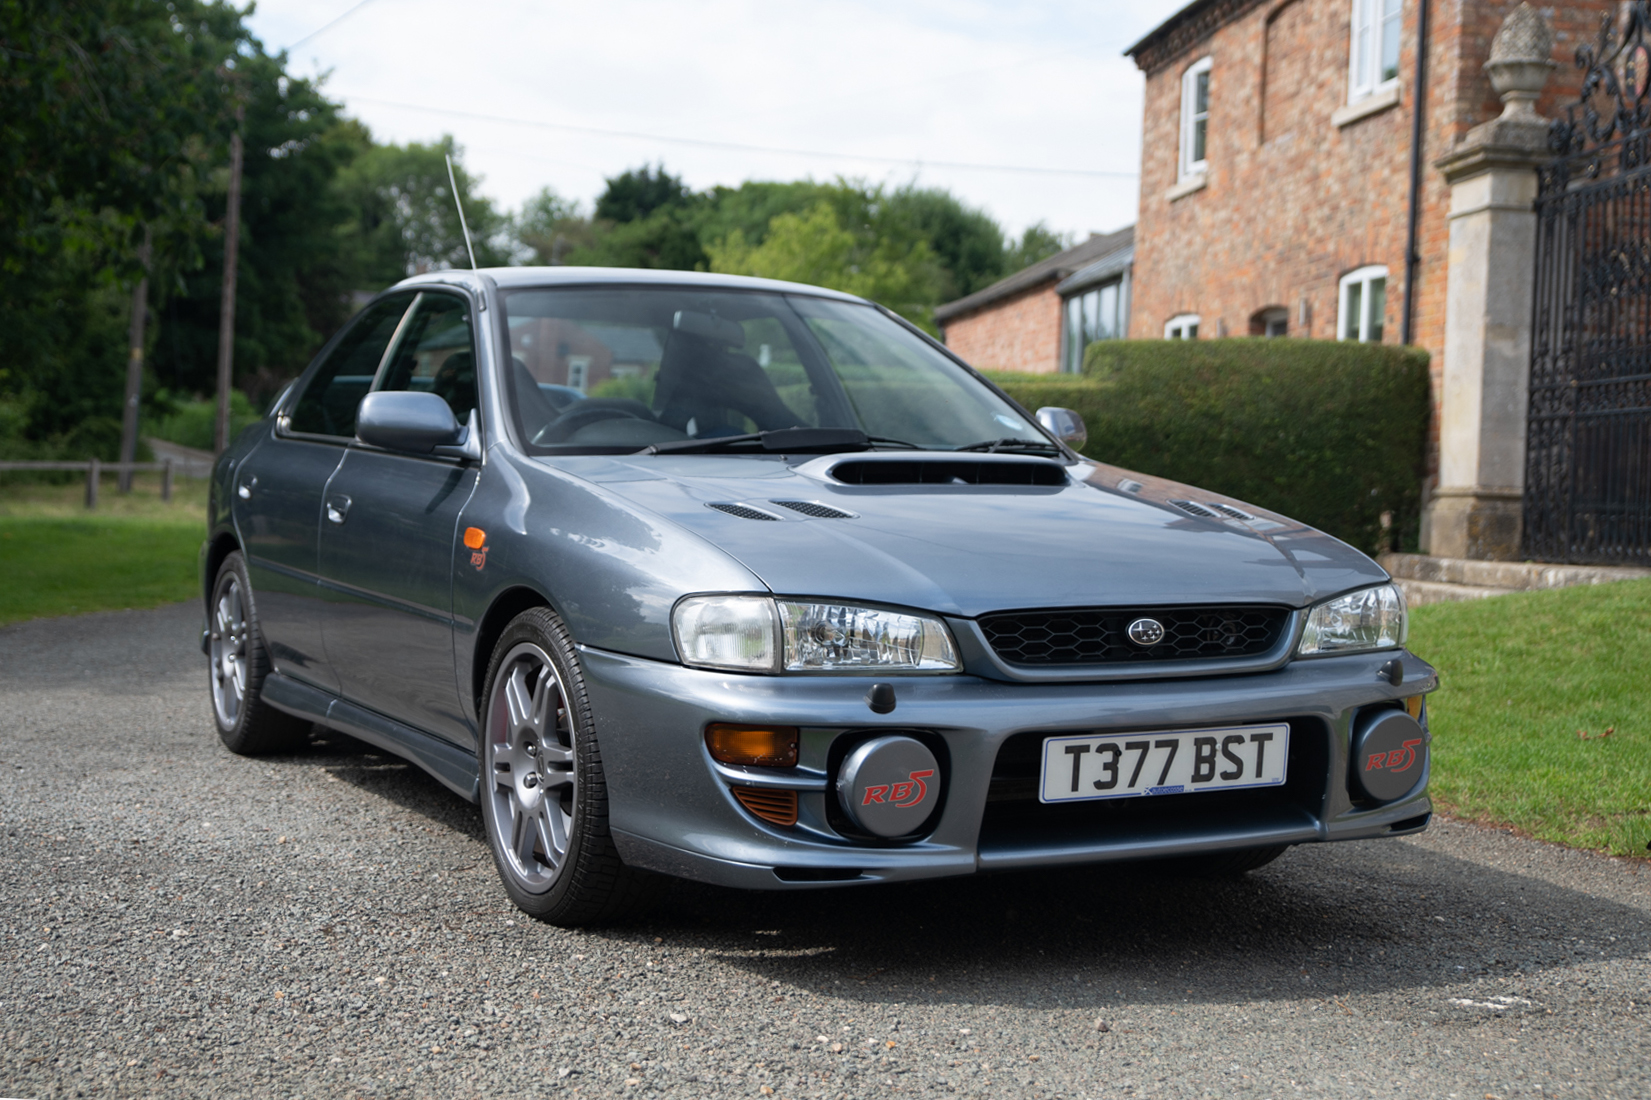 1999 SUBARU IMPREZA TURBO RB5